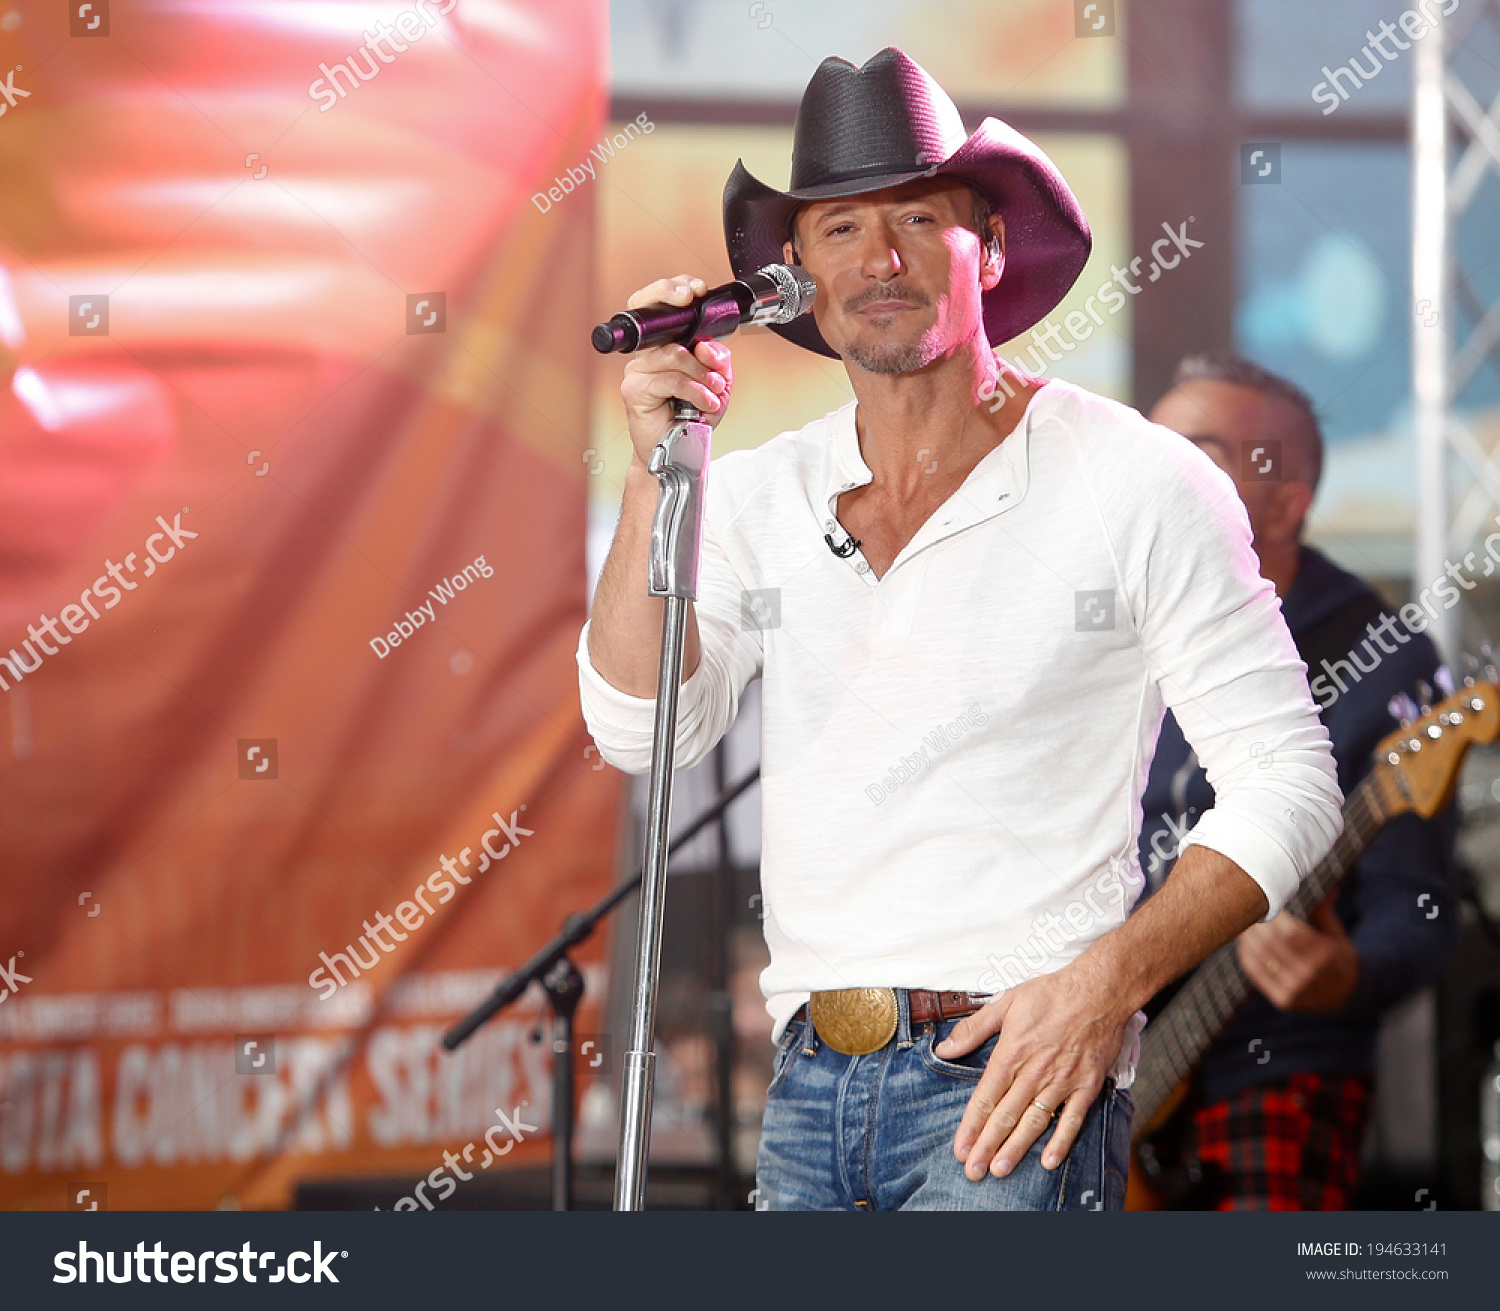 d8a16a0cc5127 NEW YORK-MAY 23  Country music singer Tim McGraw performs at the Toyota  Concert